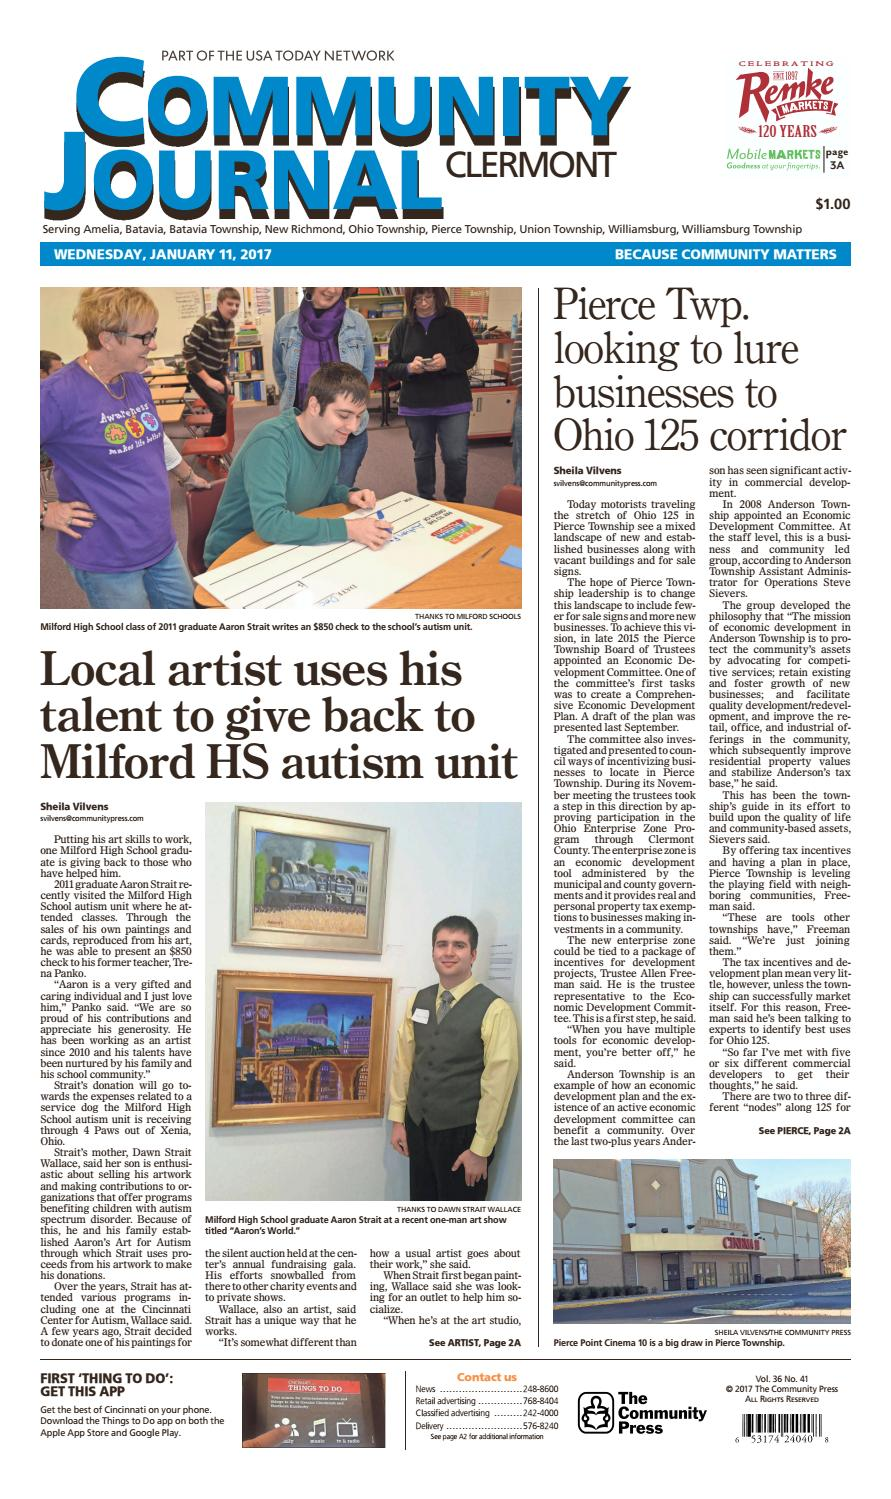 Community journal clermont 011117 by Enquirer Media - issuu